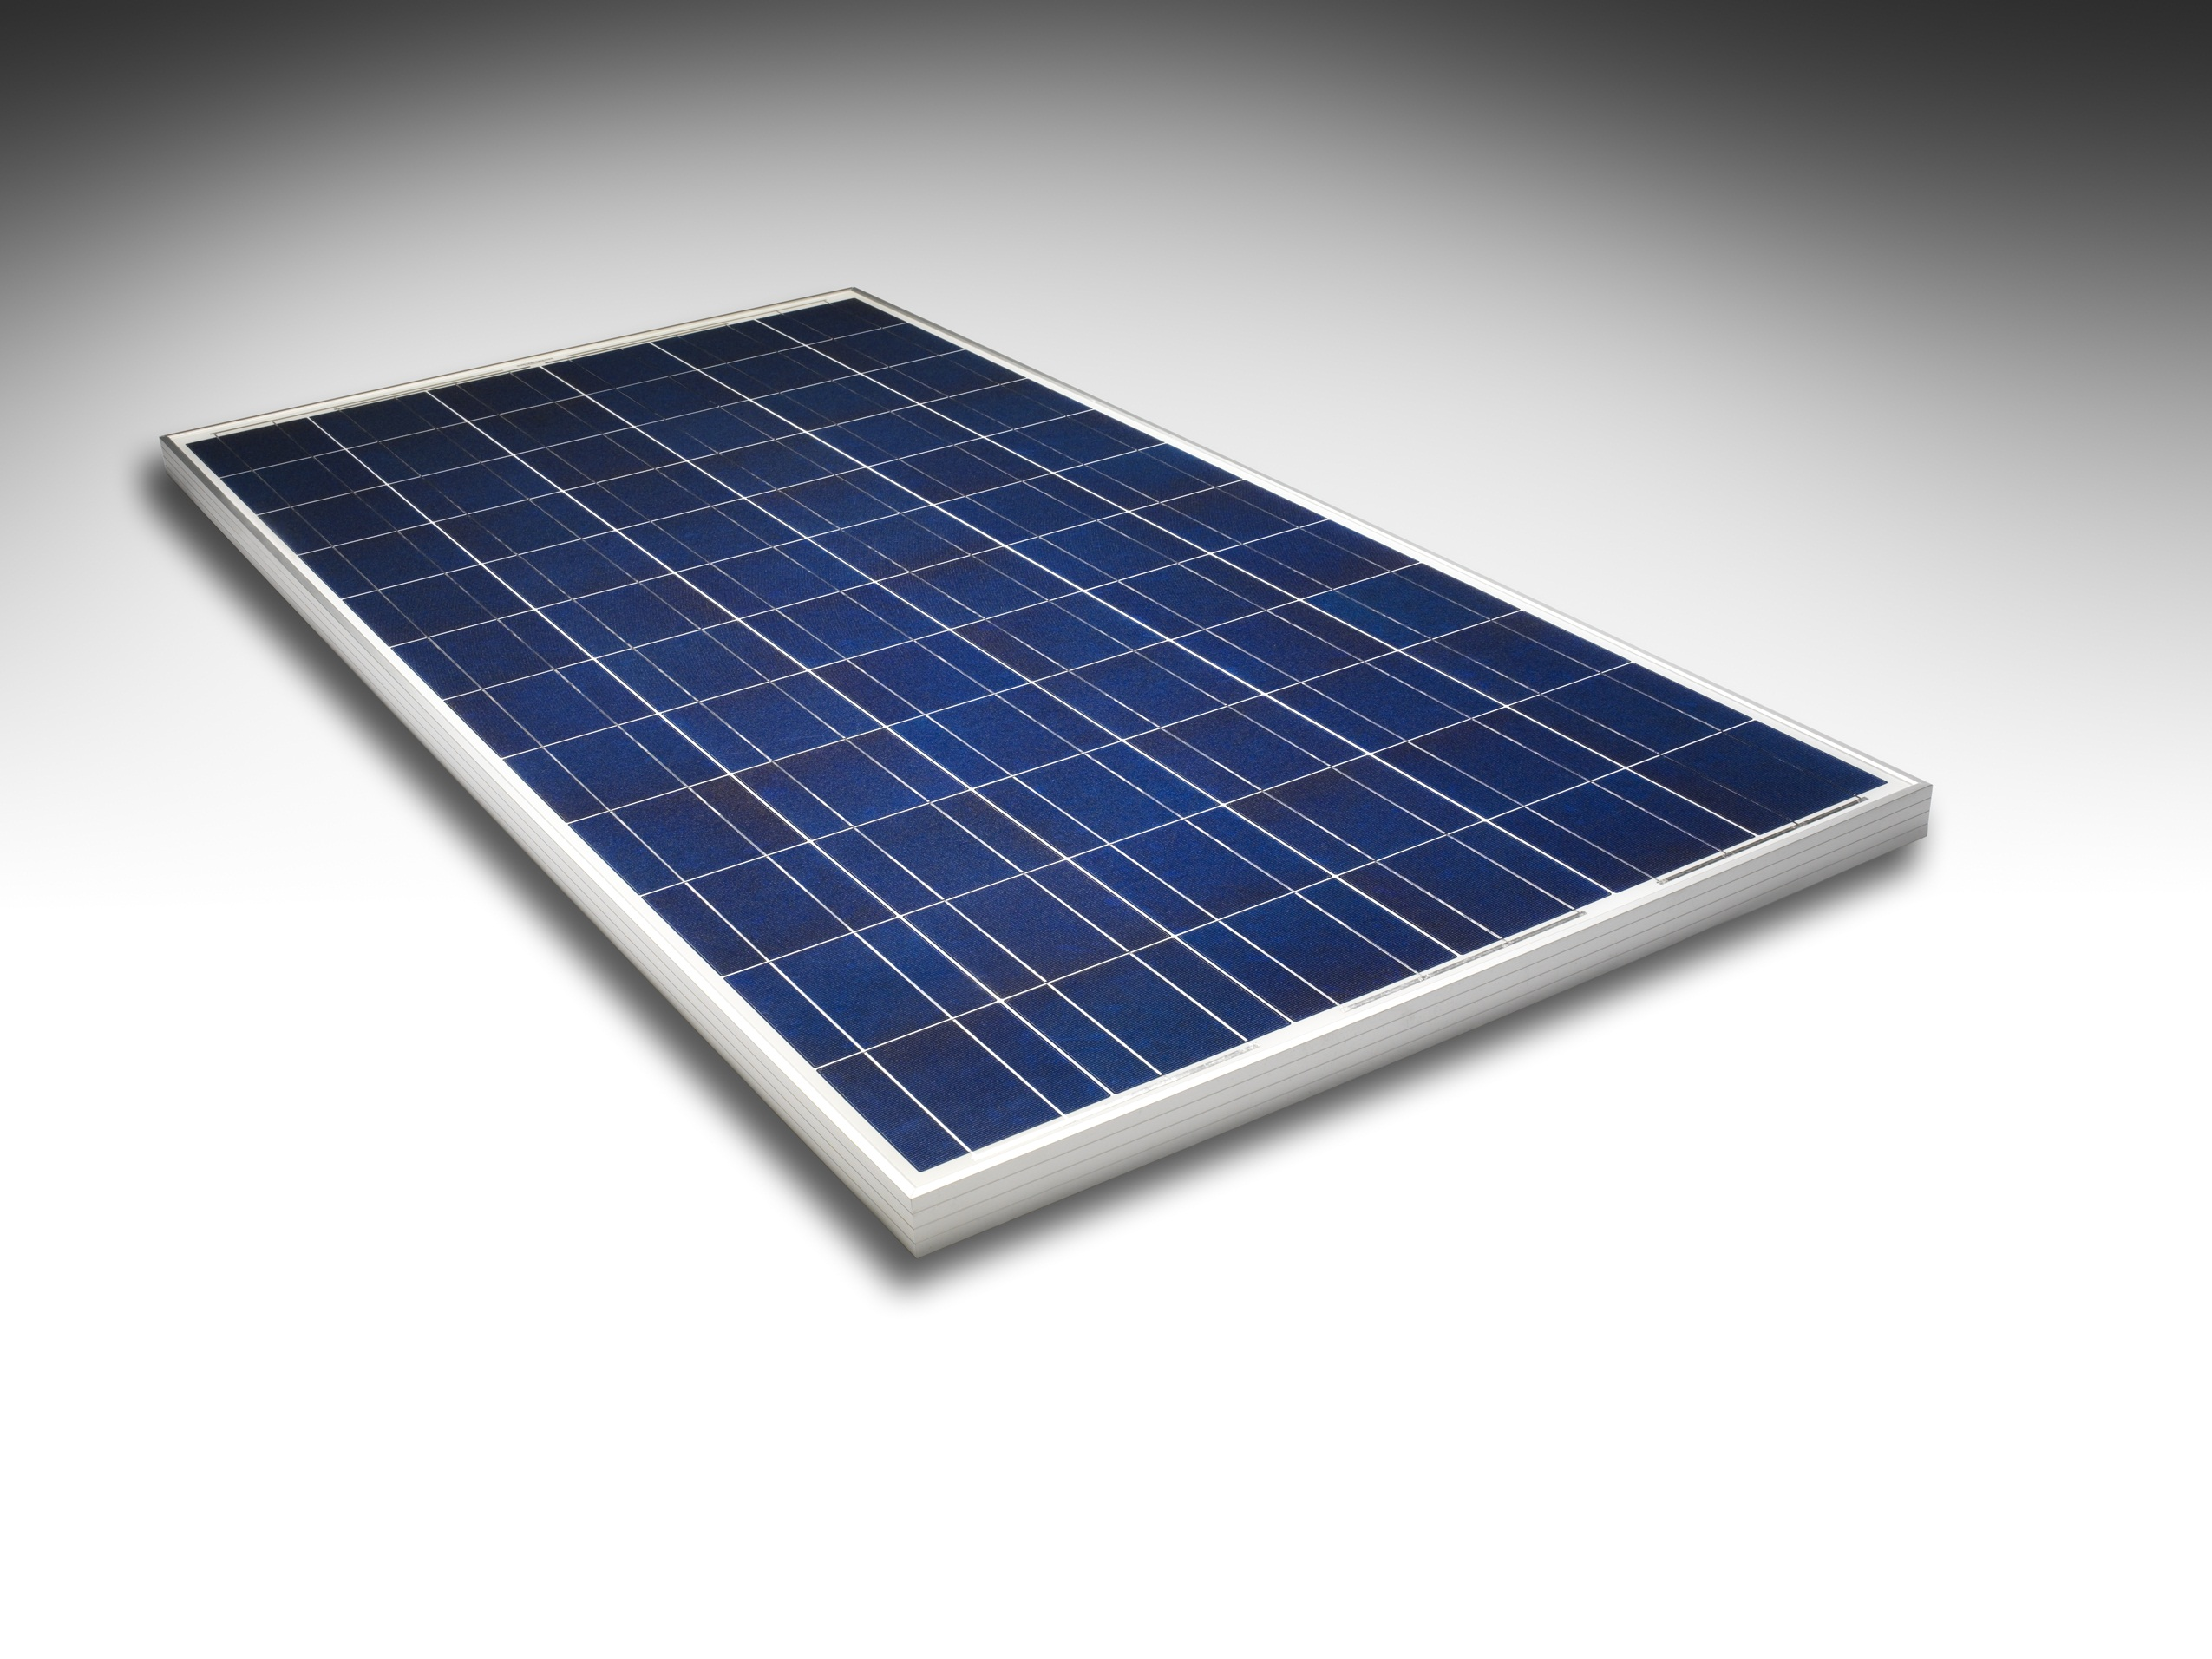 Solarpanil: Delaware Electric Cooperative To Build State-of-the-Art